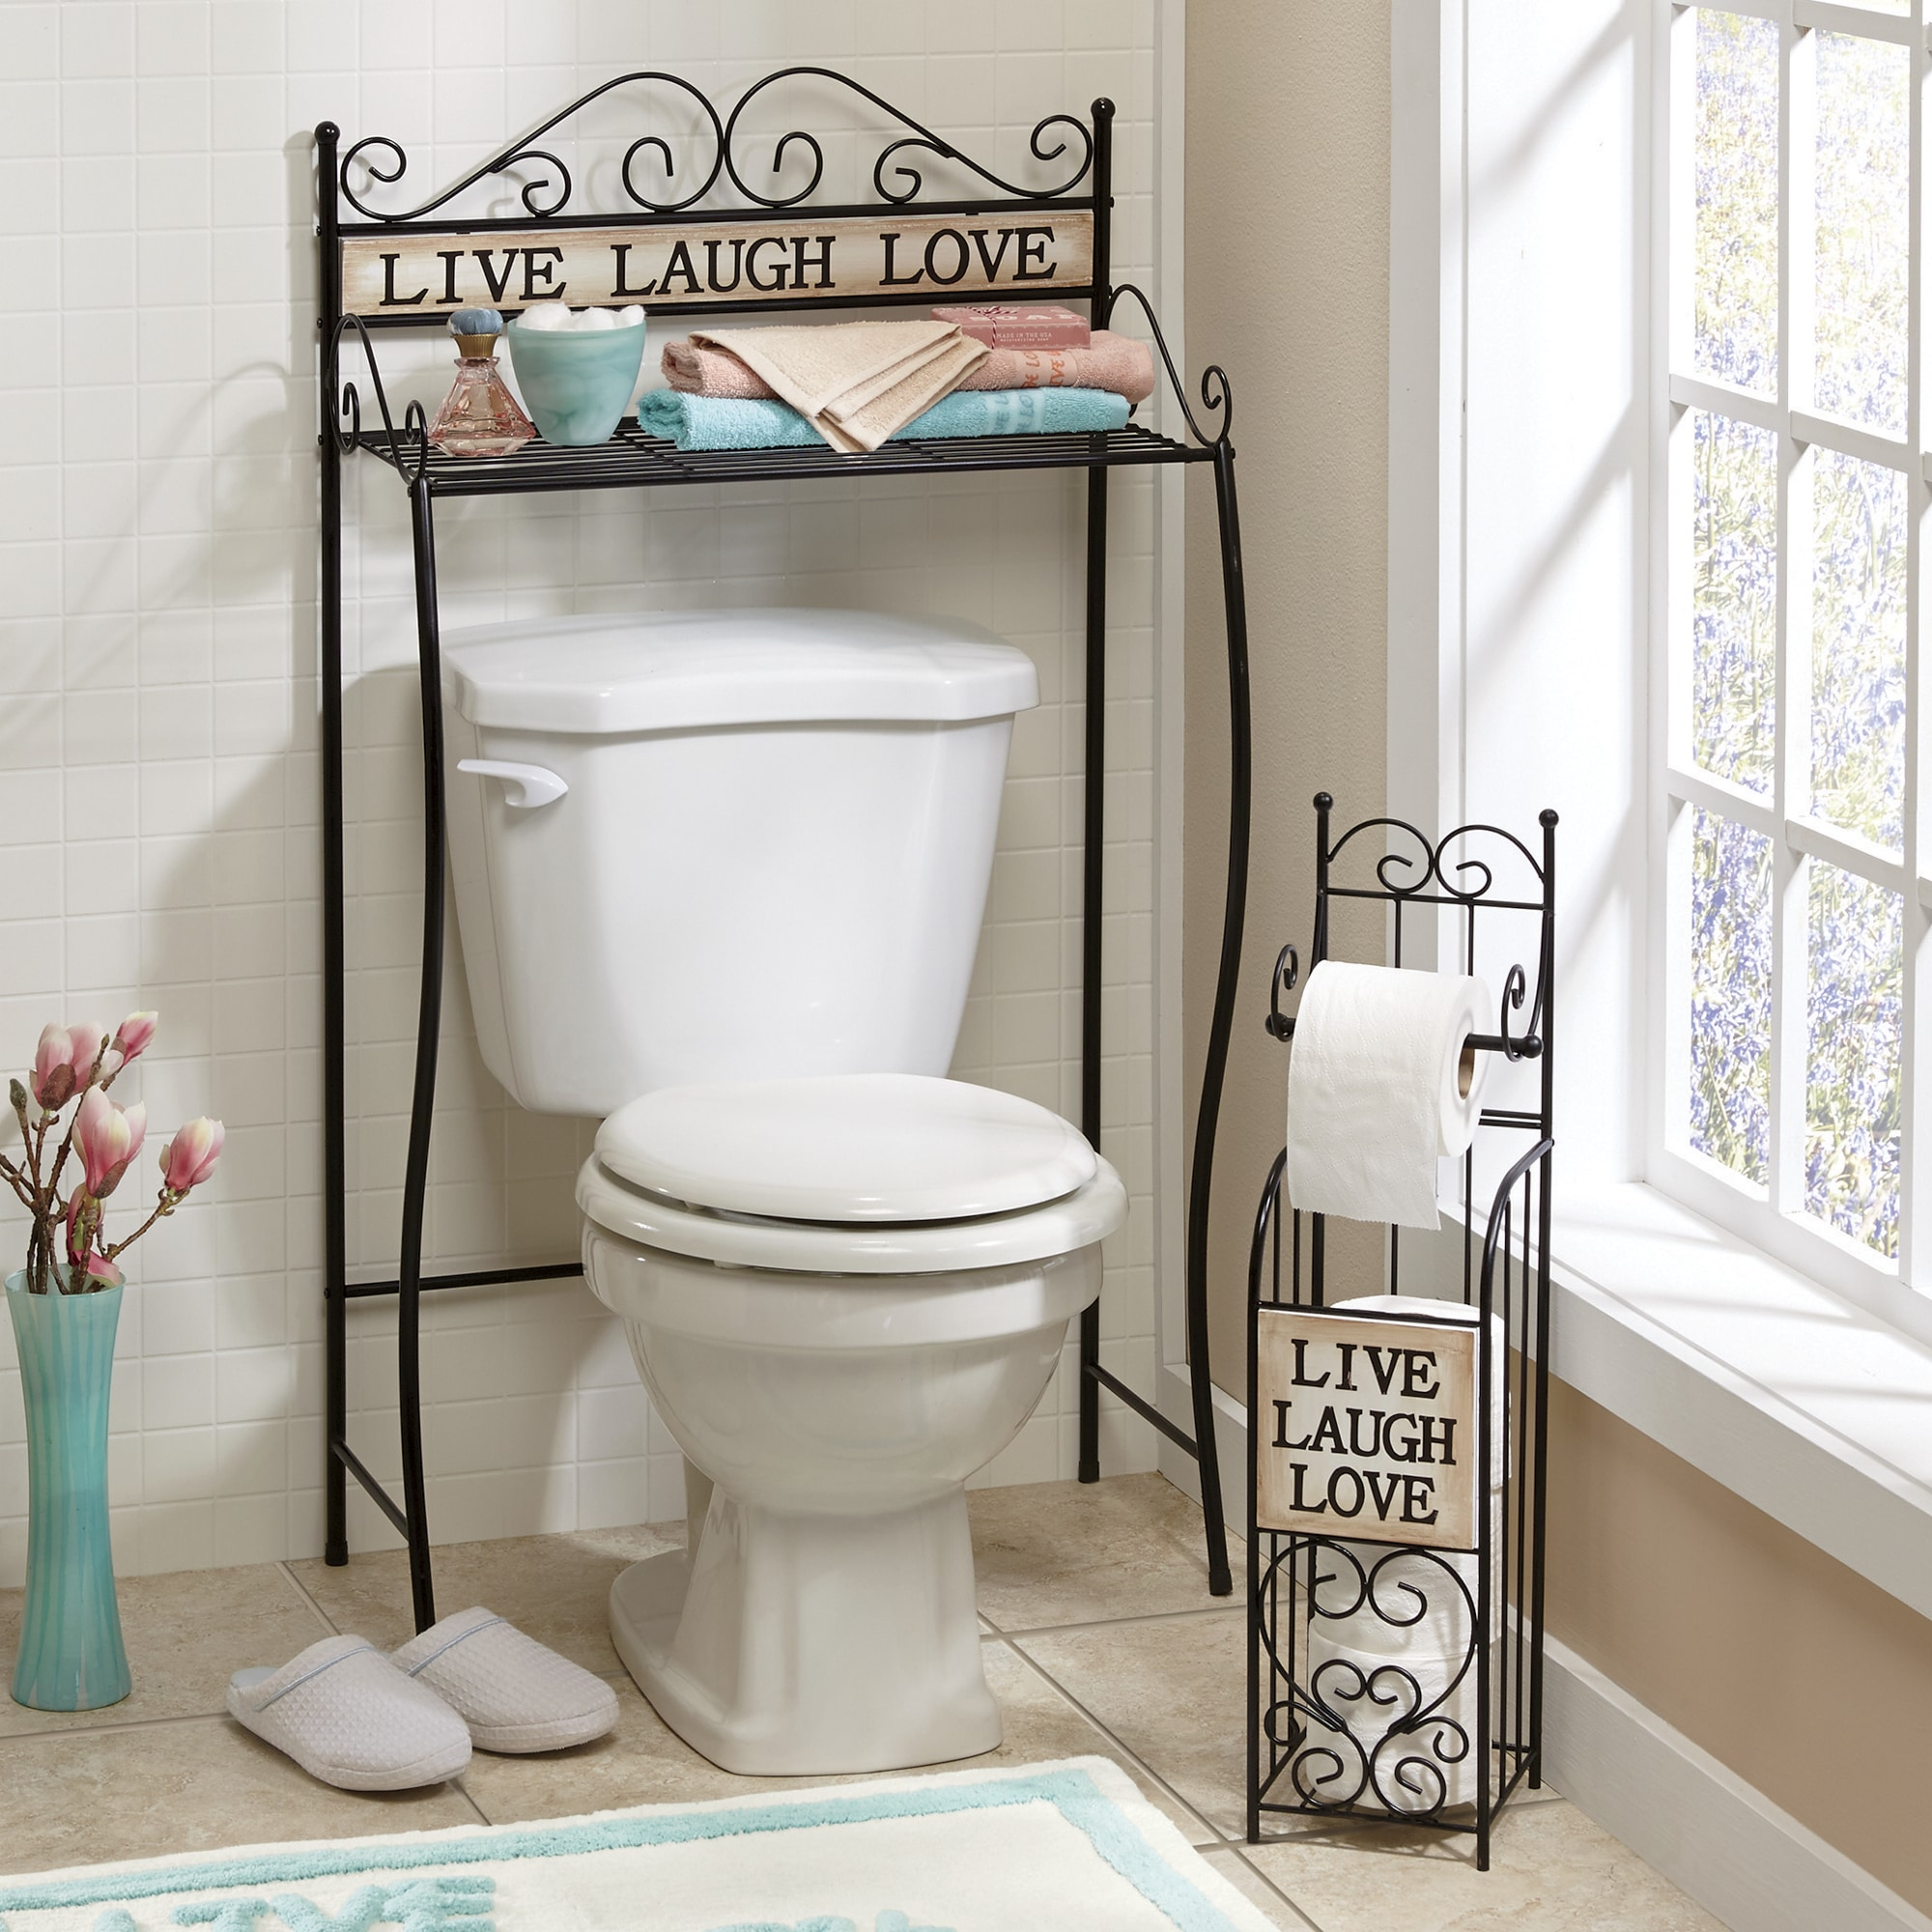 Bathroom Accessories Live Laugh Love Bathroom Accessories Seventh Avenue